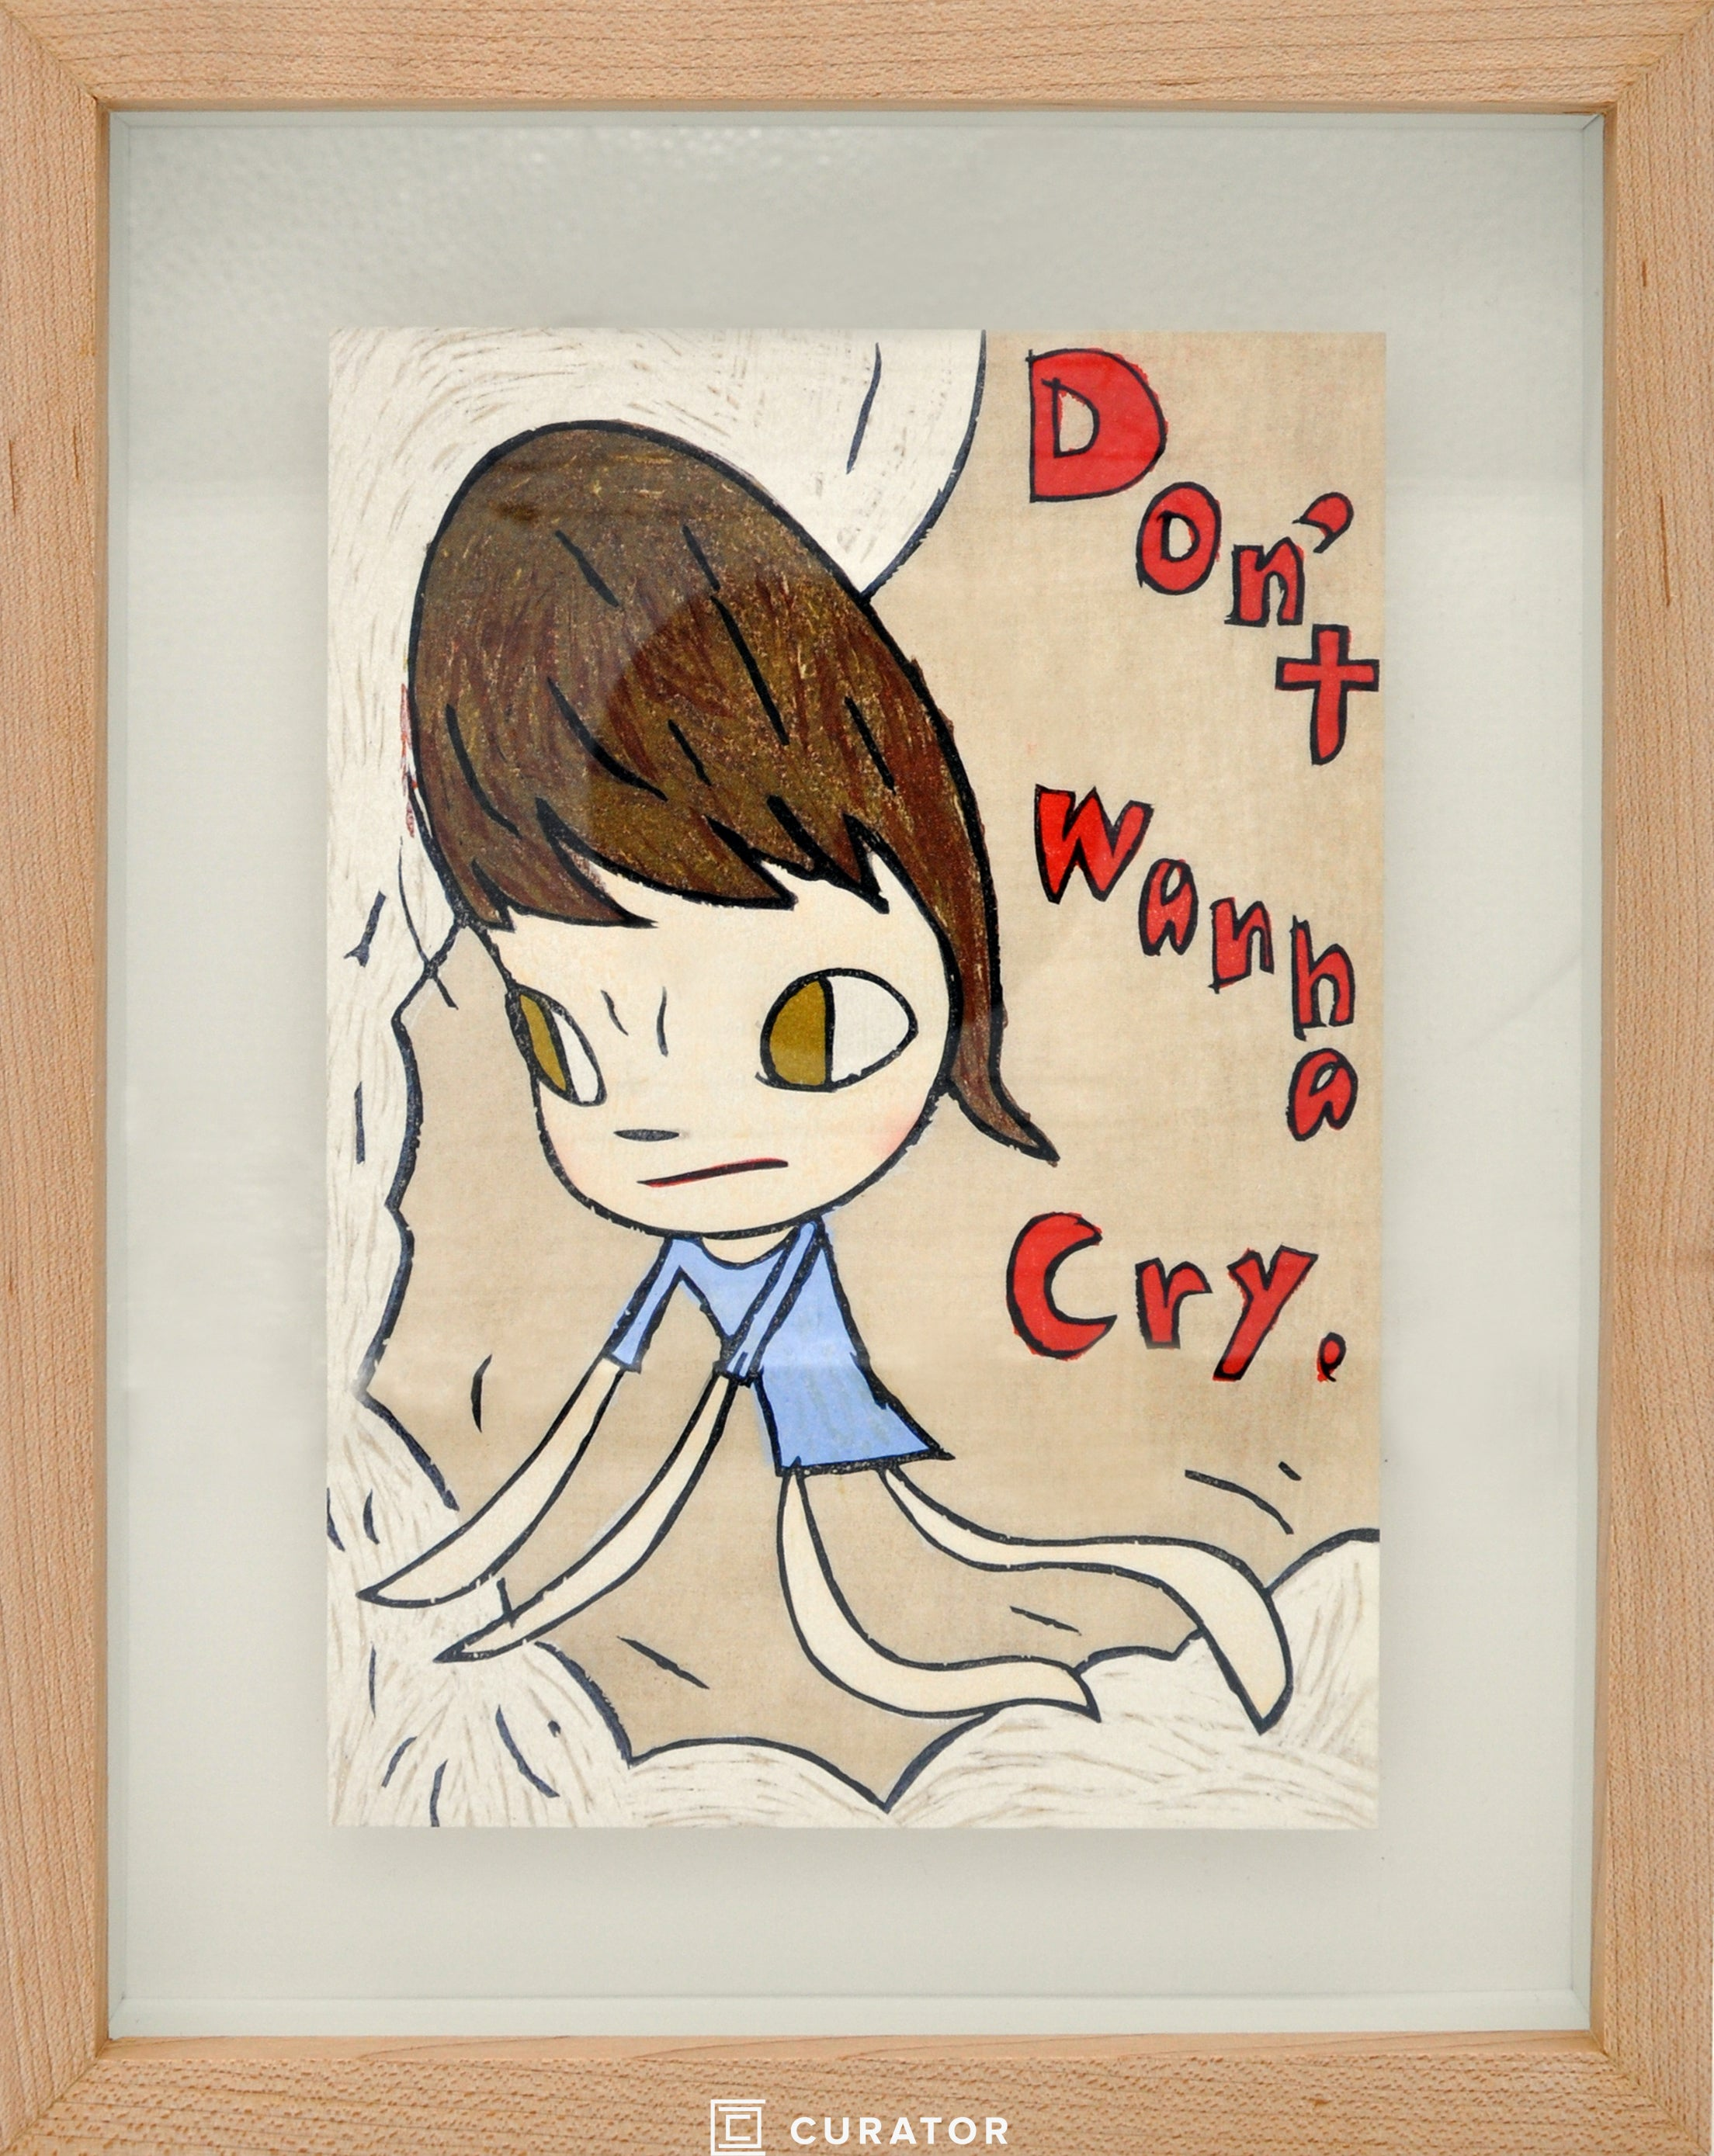 Don't Wanna Cry (Framed Official Print)